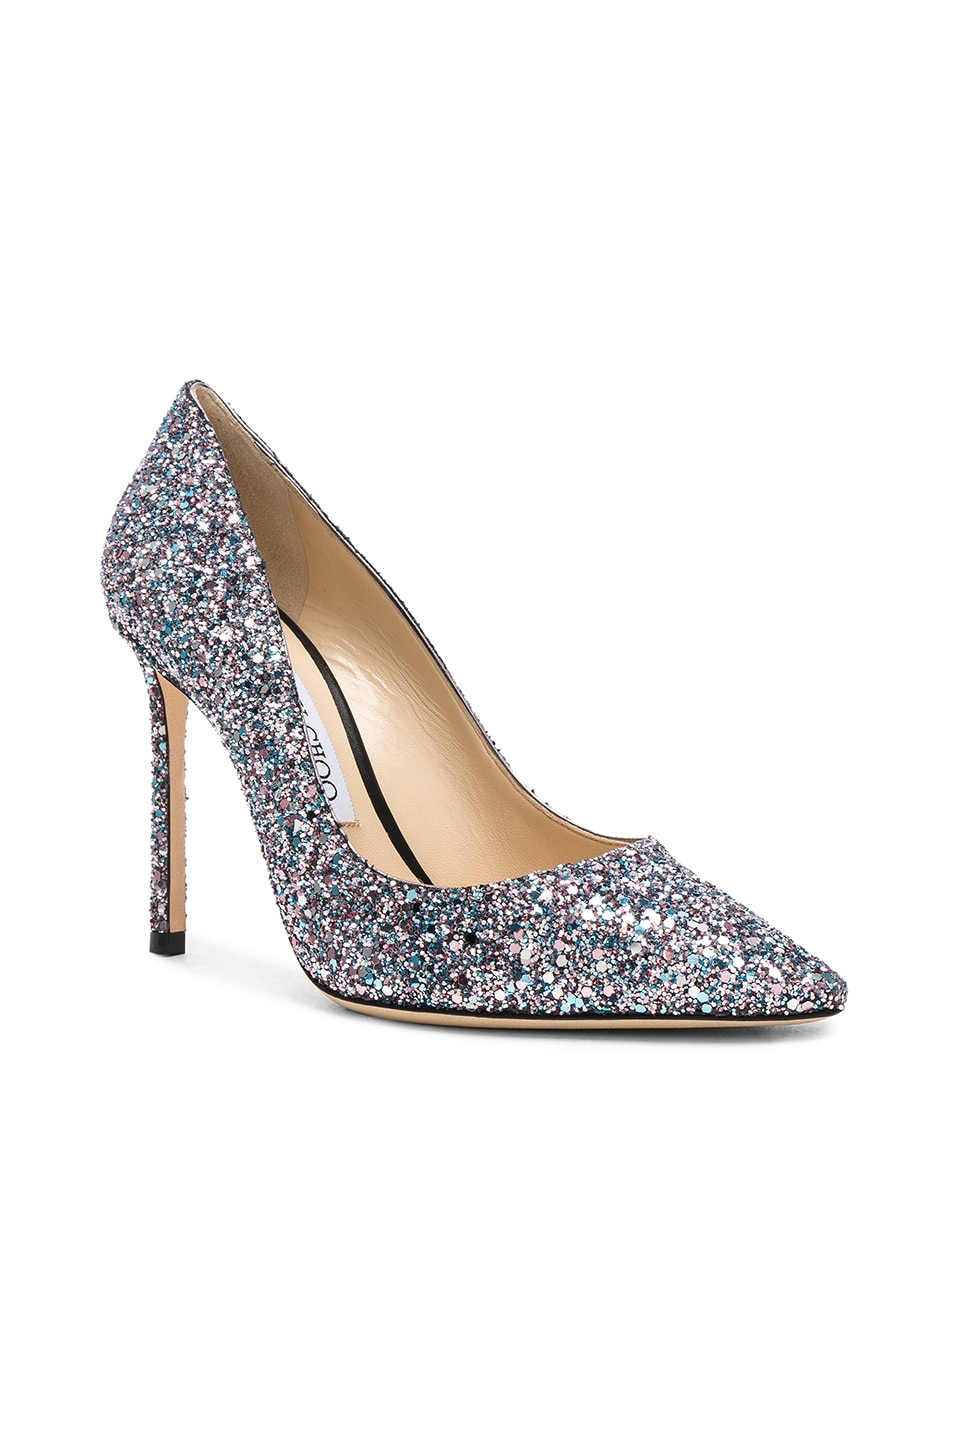 Image 2 of Jimmy Choo Romy 100 Glitter Heels in Bubblegum Mix